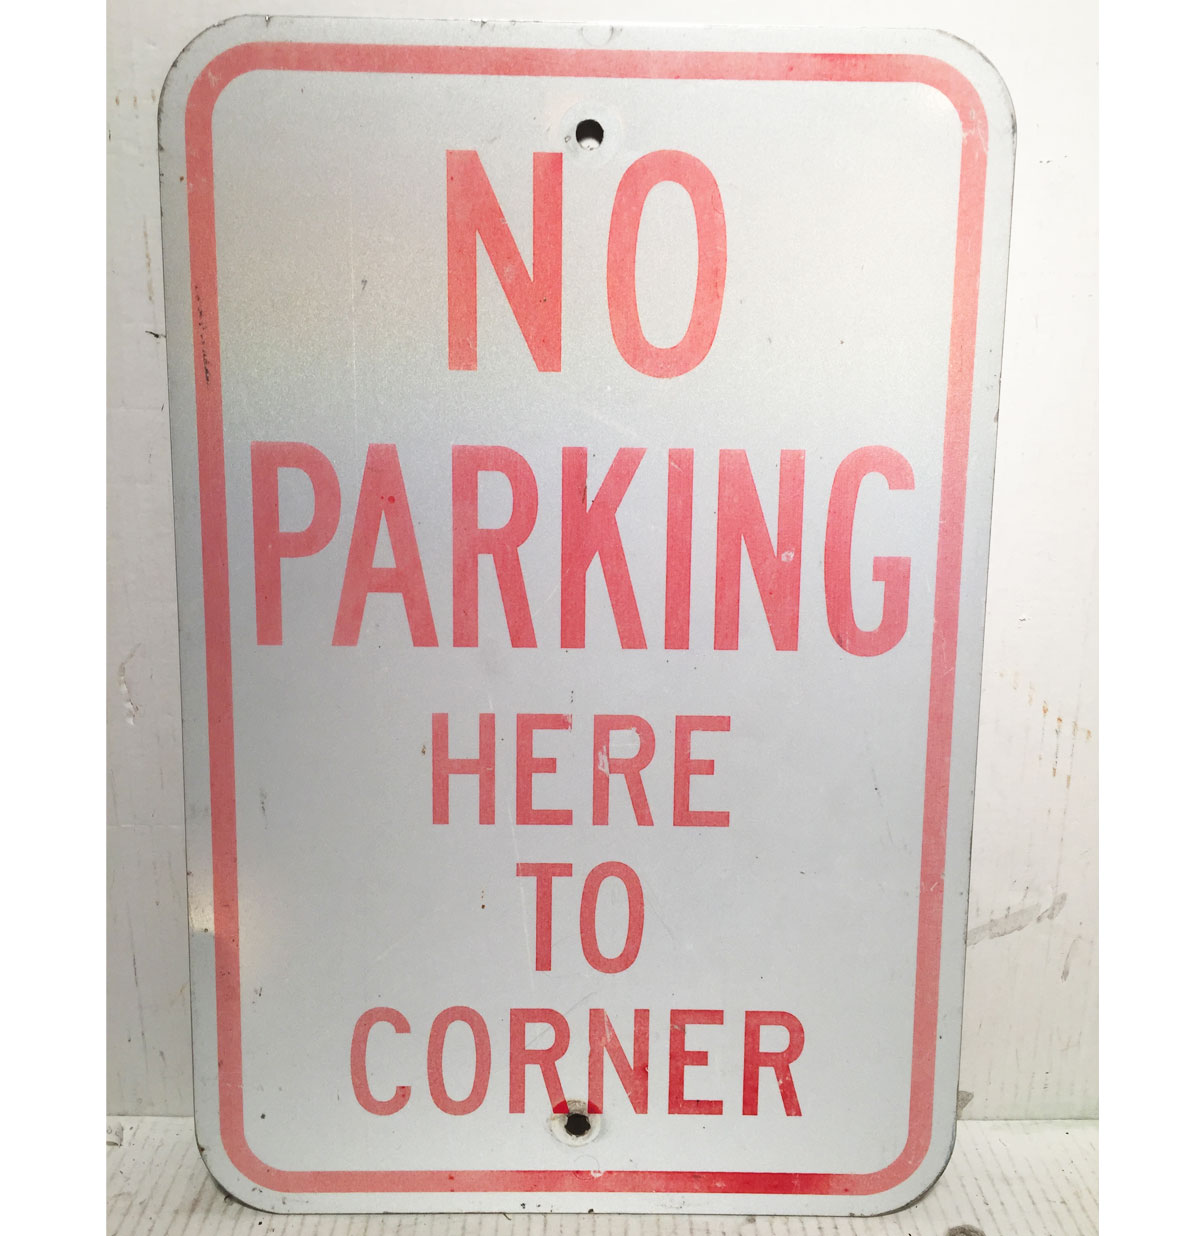 No Parking Here To Corner Straatbord - Origineel